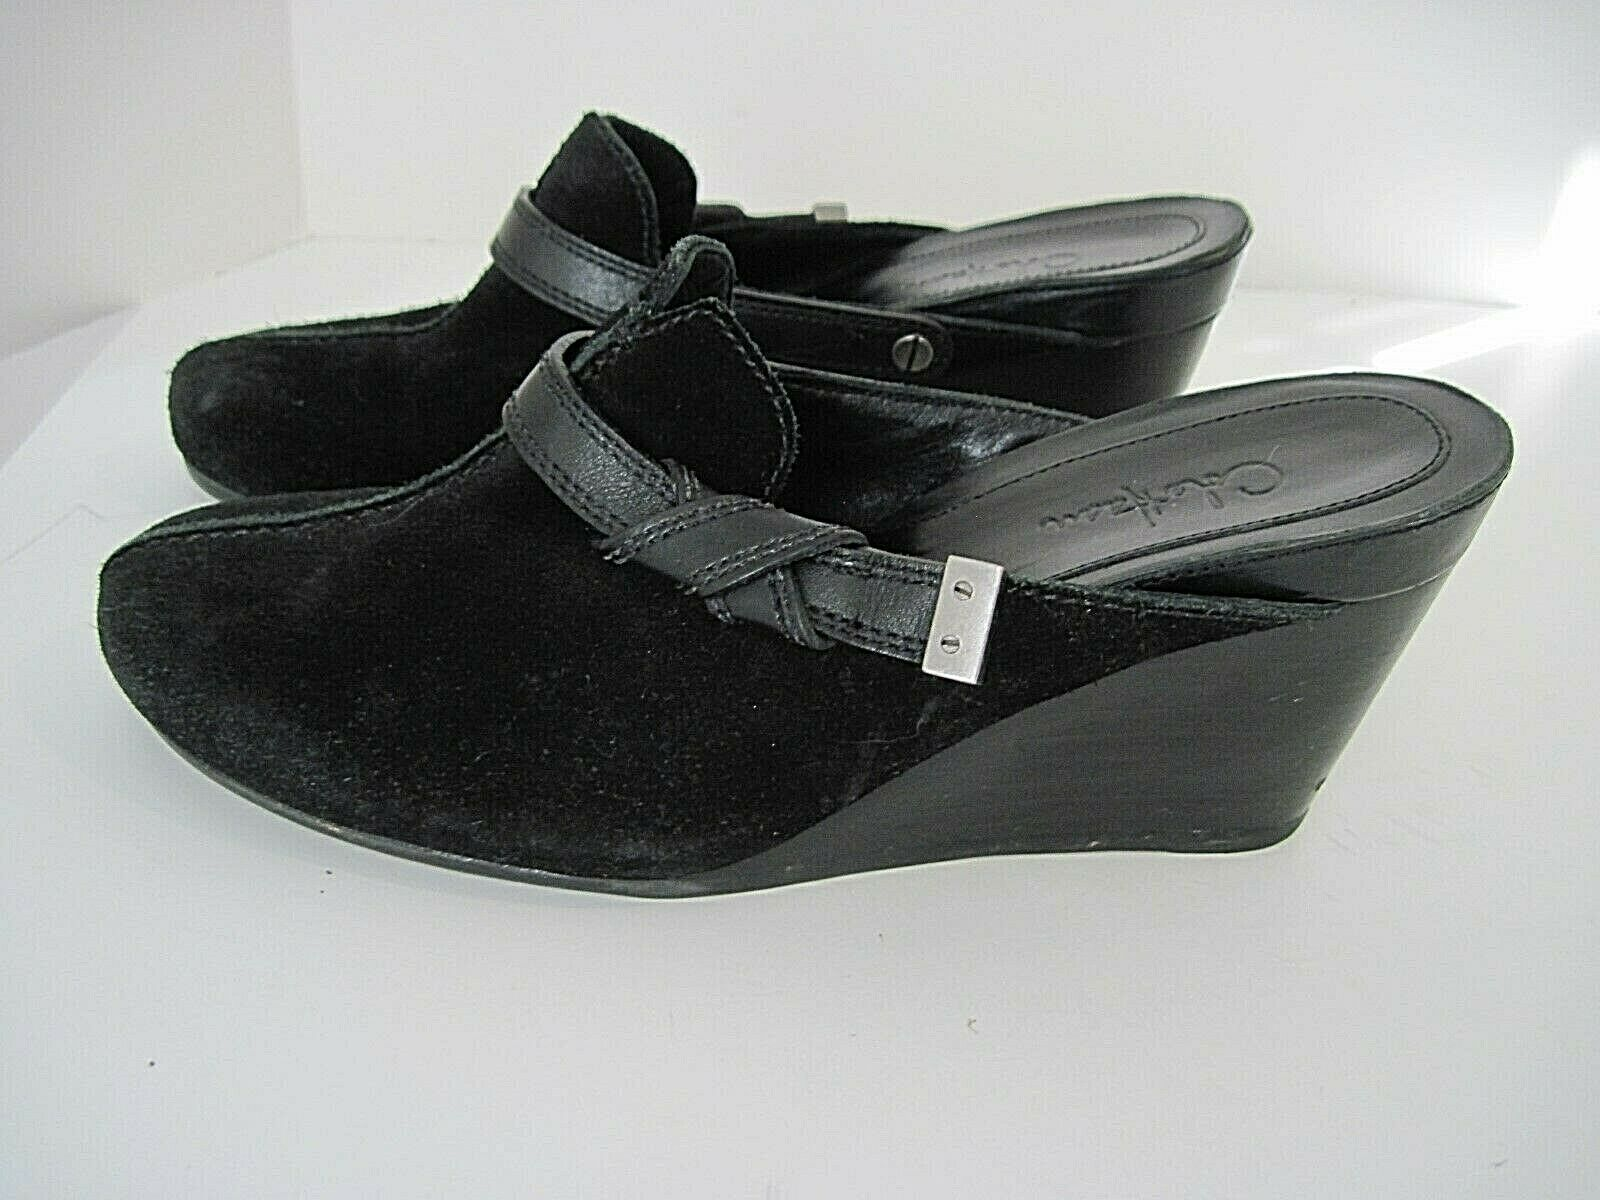 Cole Haan Women's Wedge Clogs Mules Black Suede Leather Buckle Size 7 1 2B